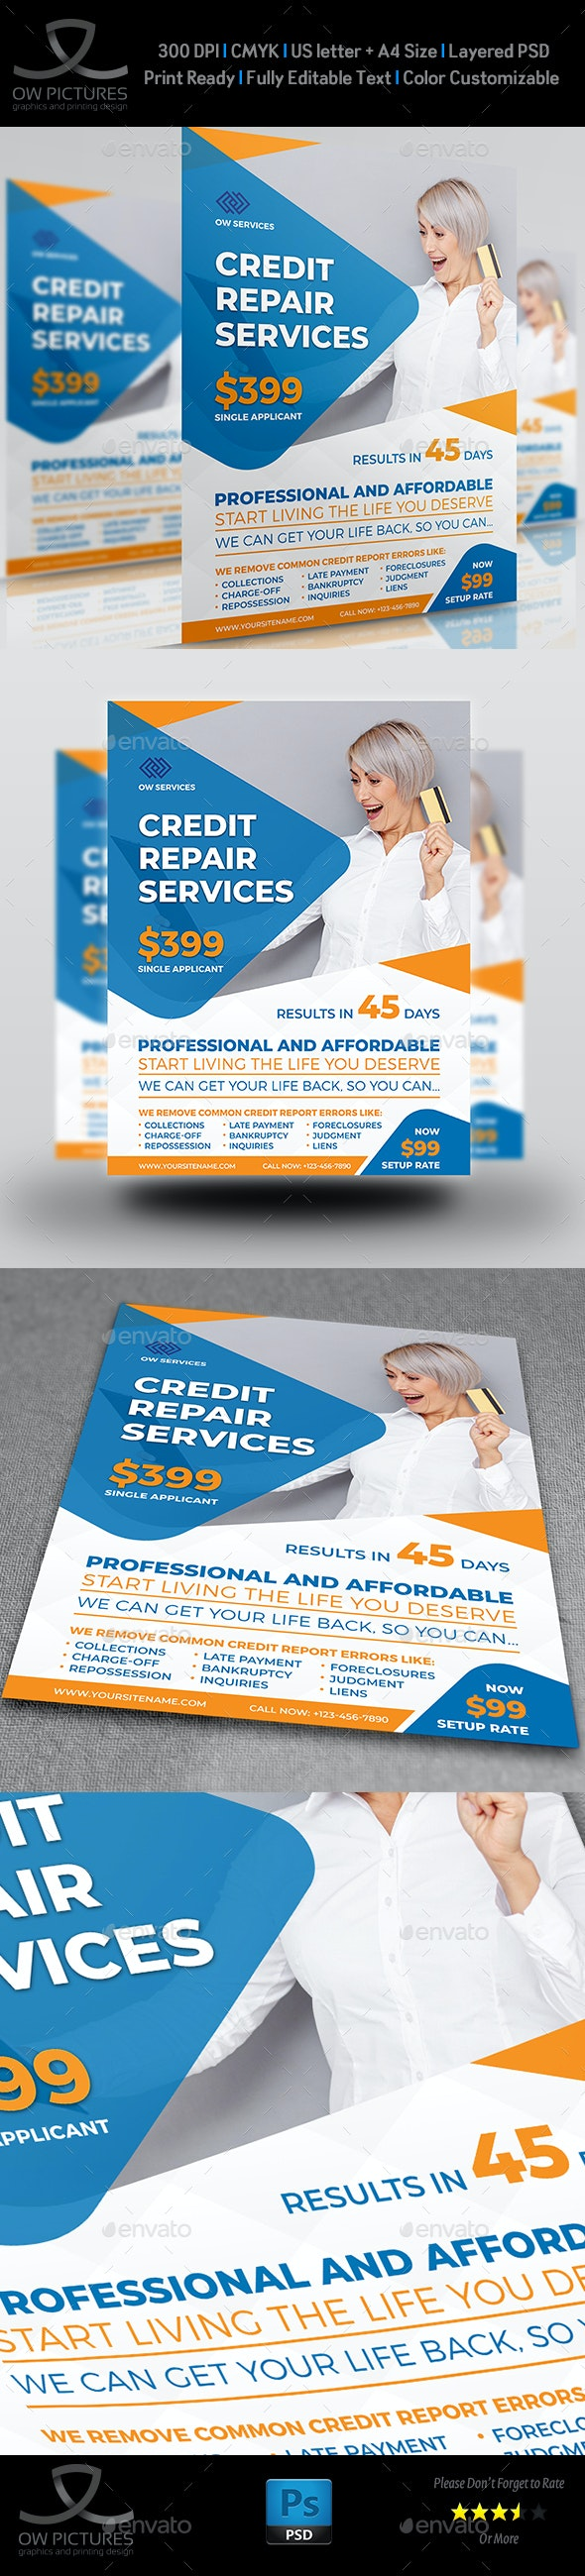 Credit Repair Services Flyer Template - Corporate Flyers